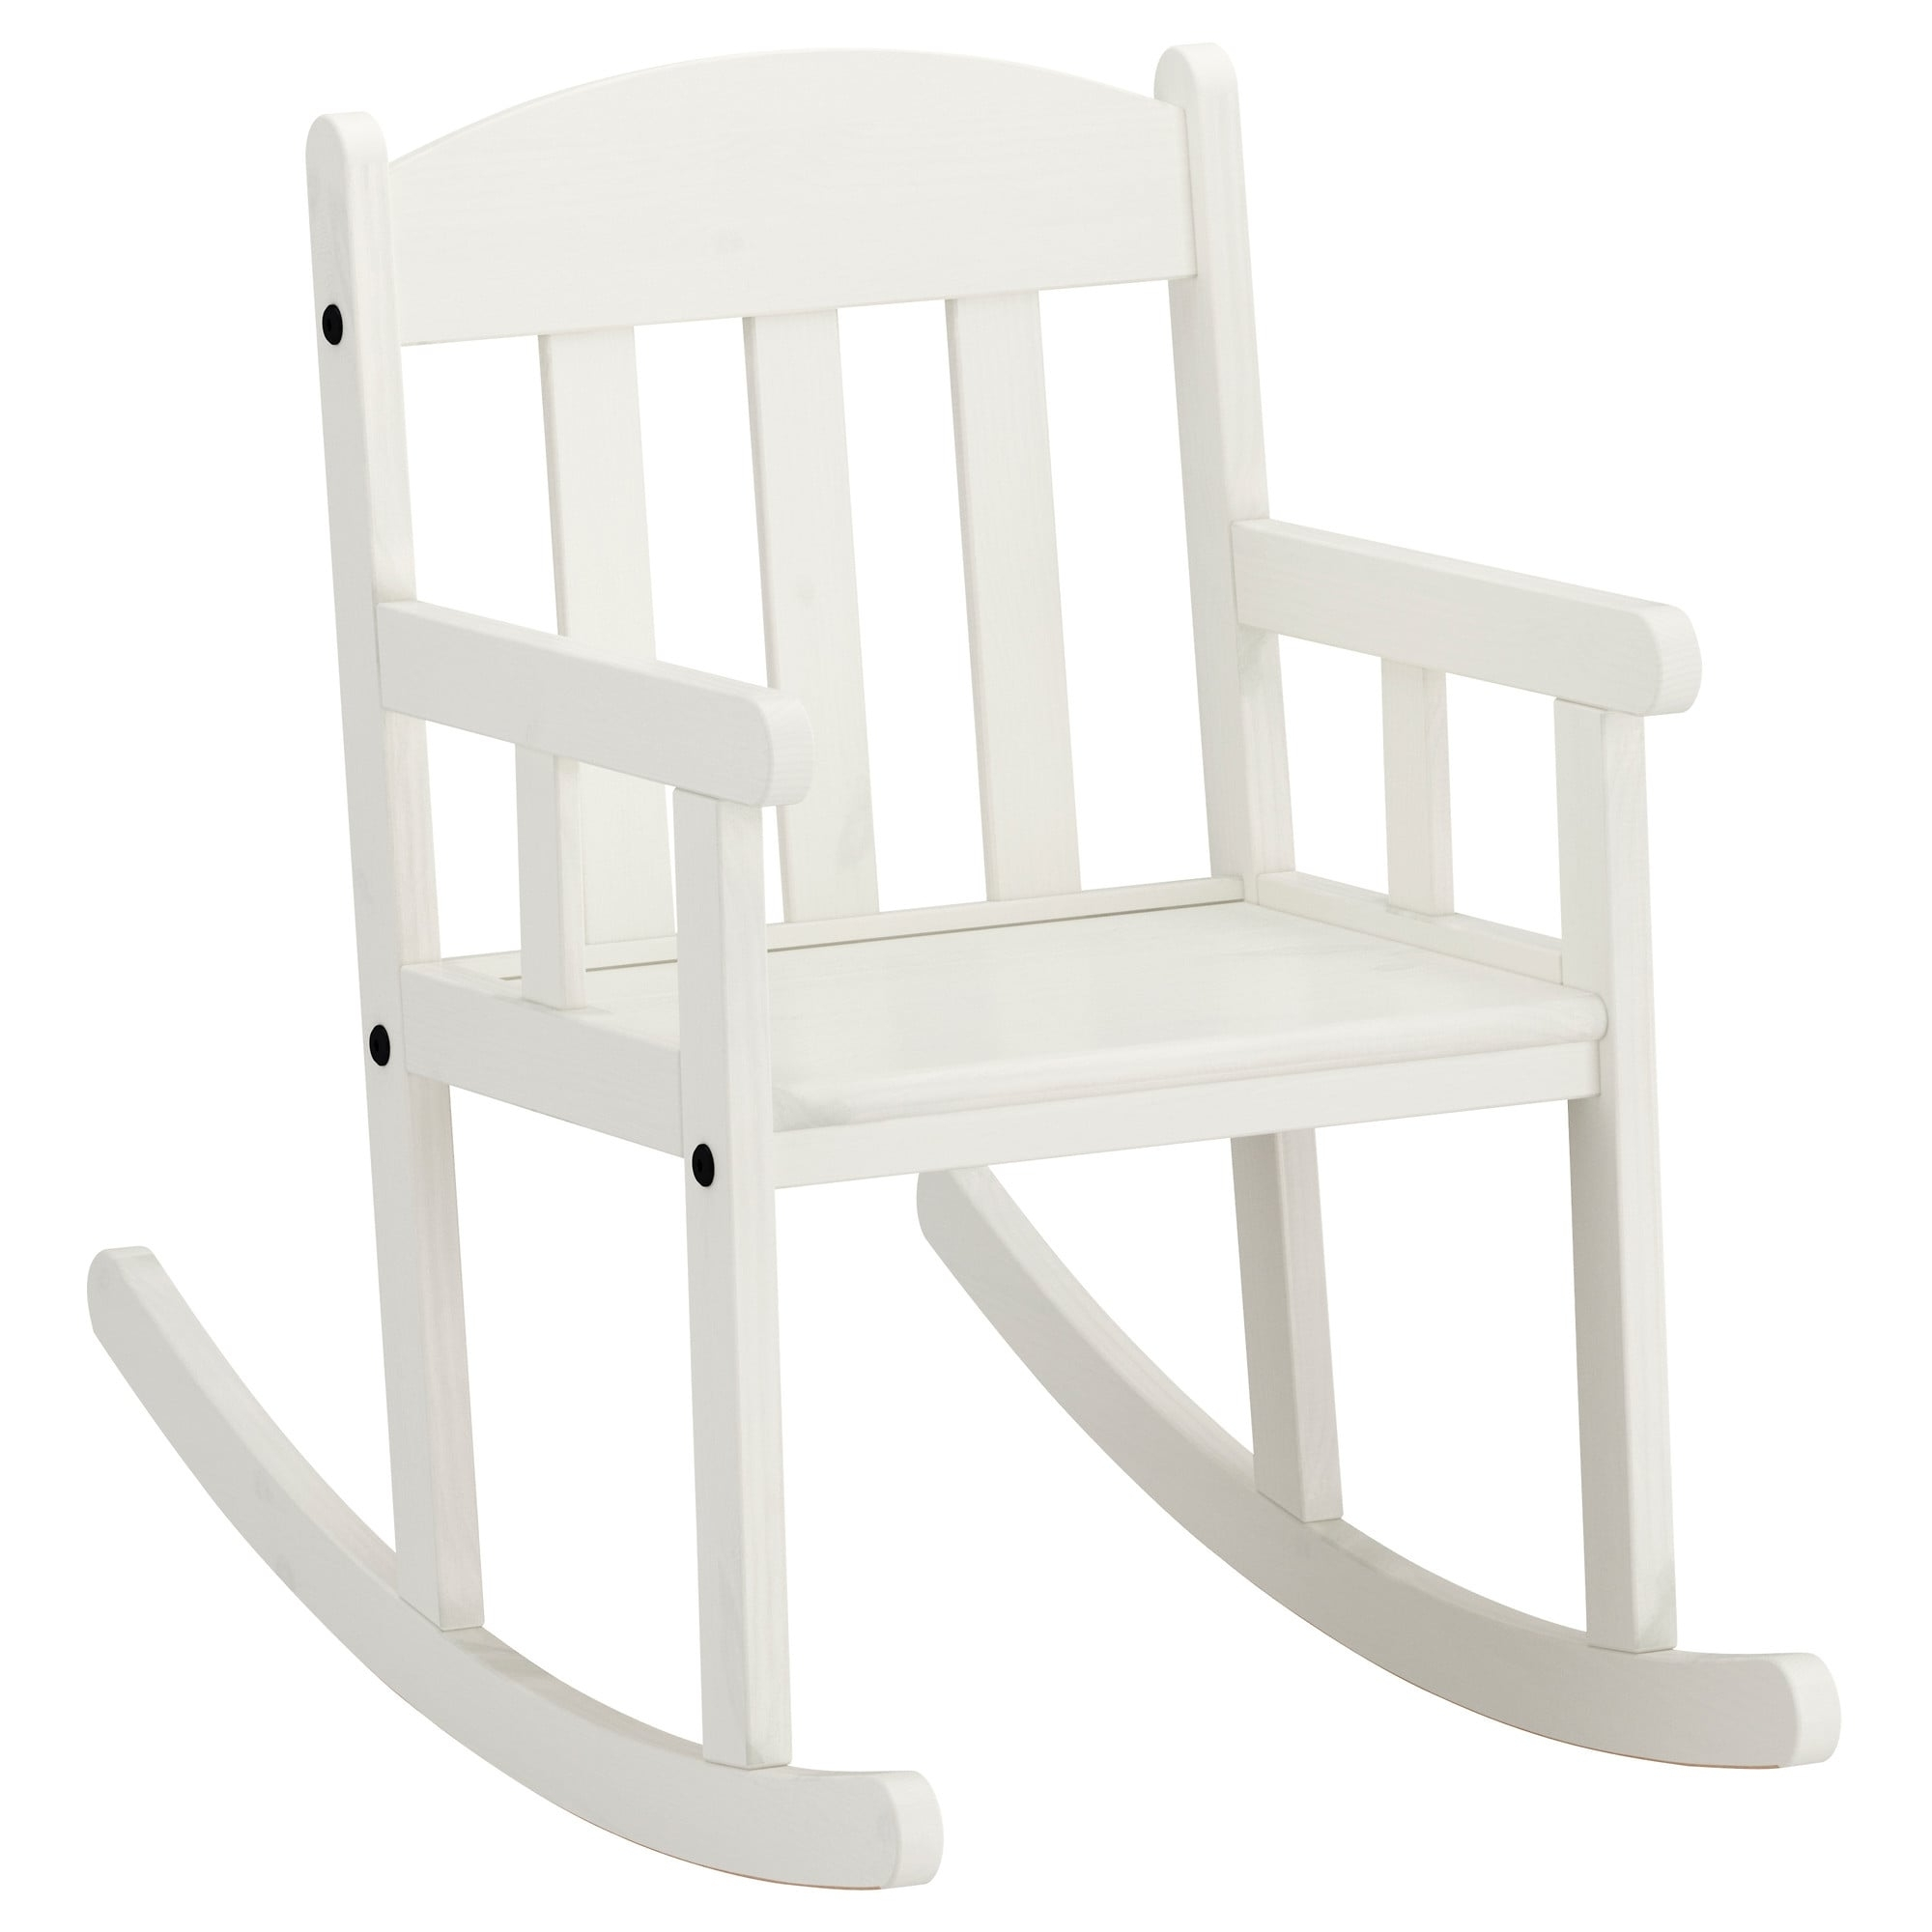 Sundvik Rocking Chair White – Ikea Regarding Famous Ireland Rocking Chairs (View 19 of 20)